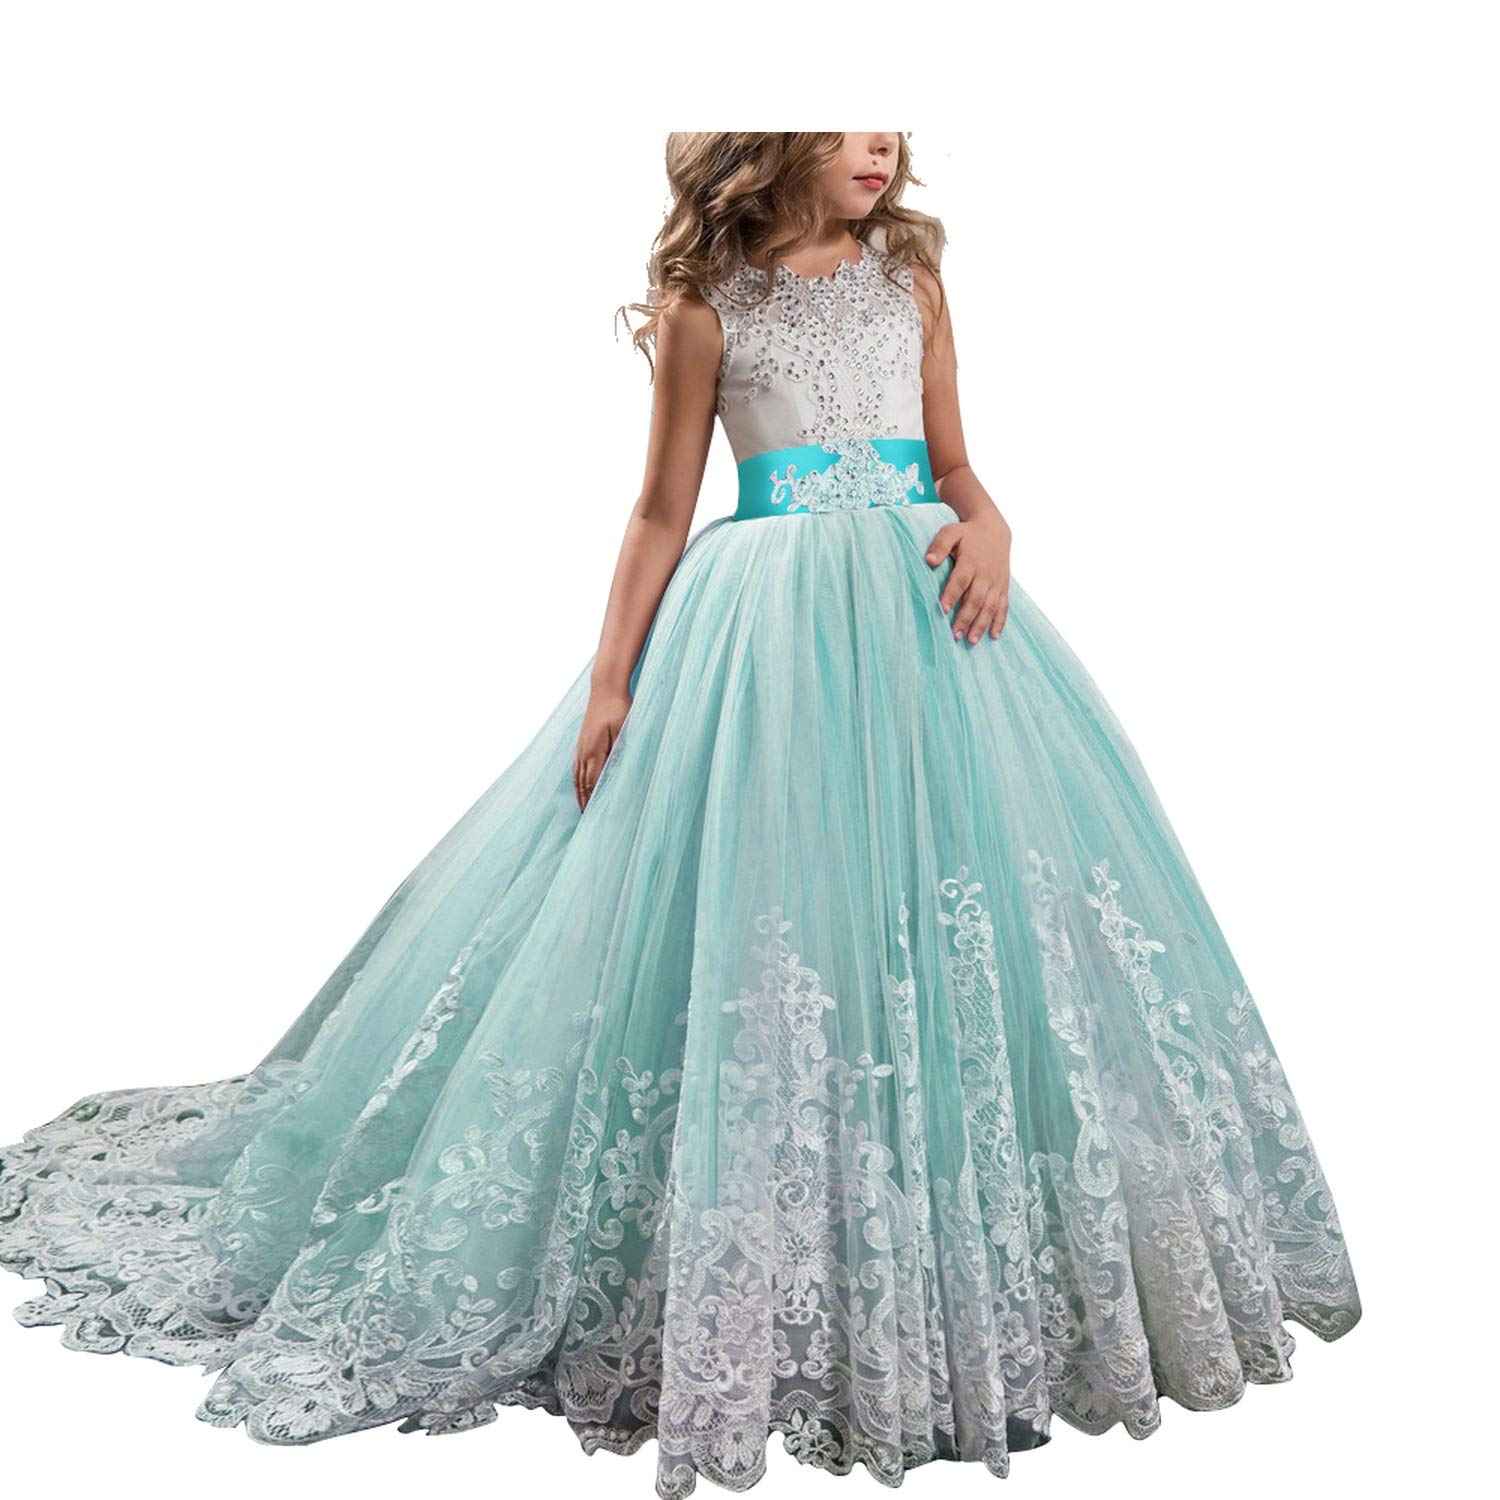 Childrens Dresses High-Grade Lace Girls Flowers Party Costume for Kids Girl Pageant Dance Ball Gown Prom Birthday Dress,Green,10